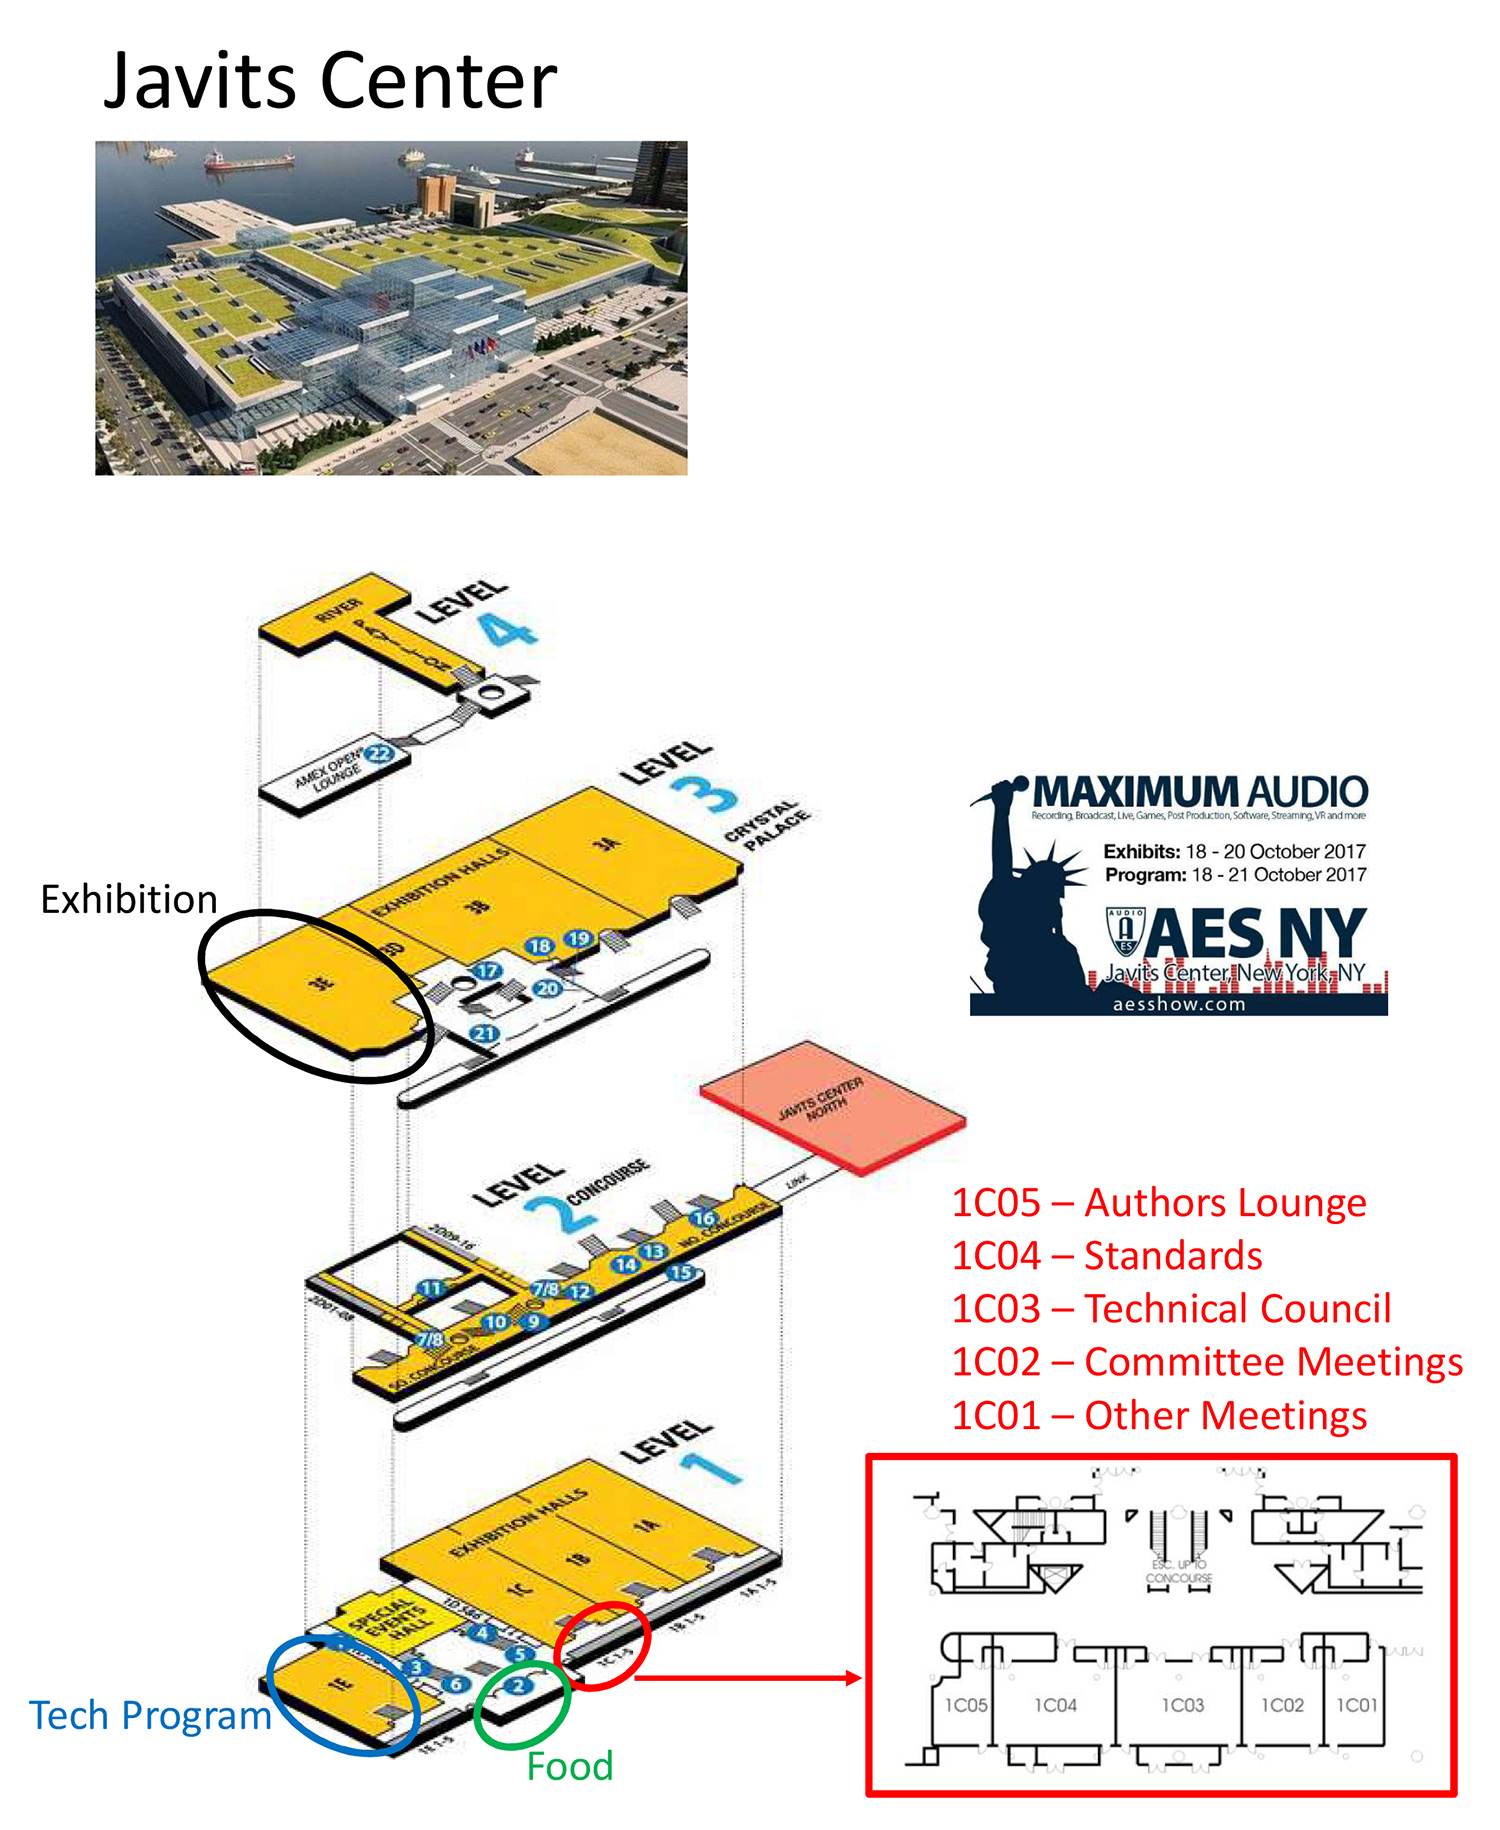 Map of Javits